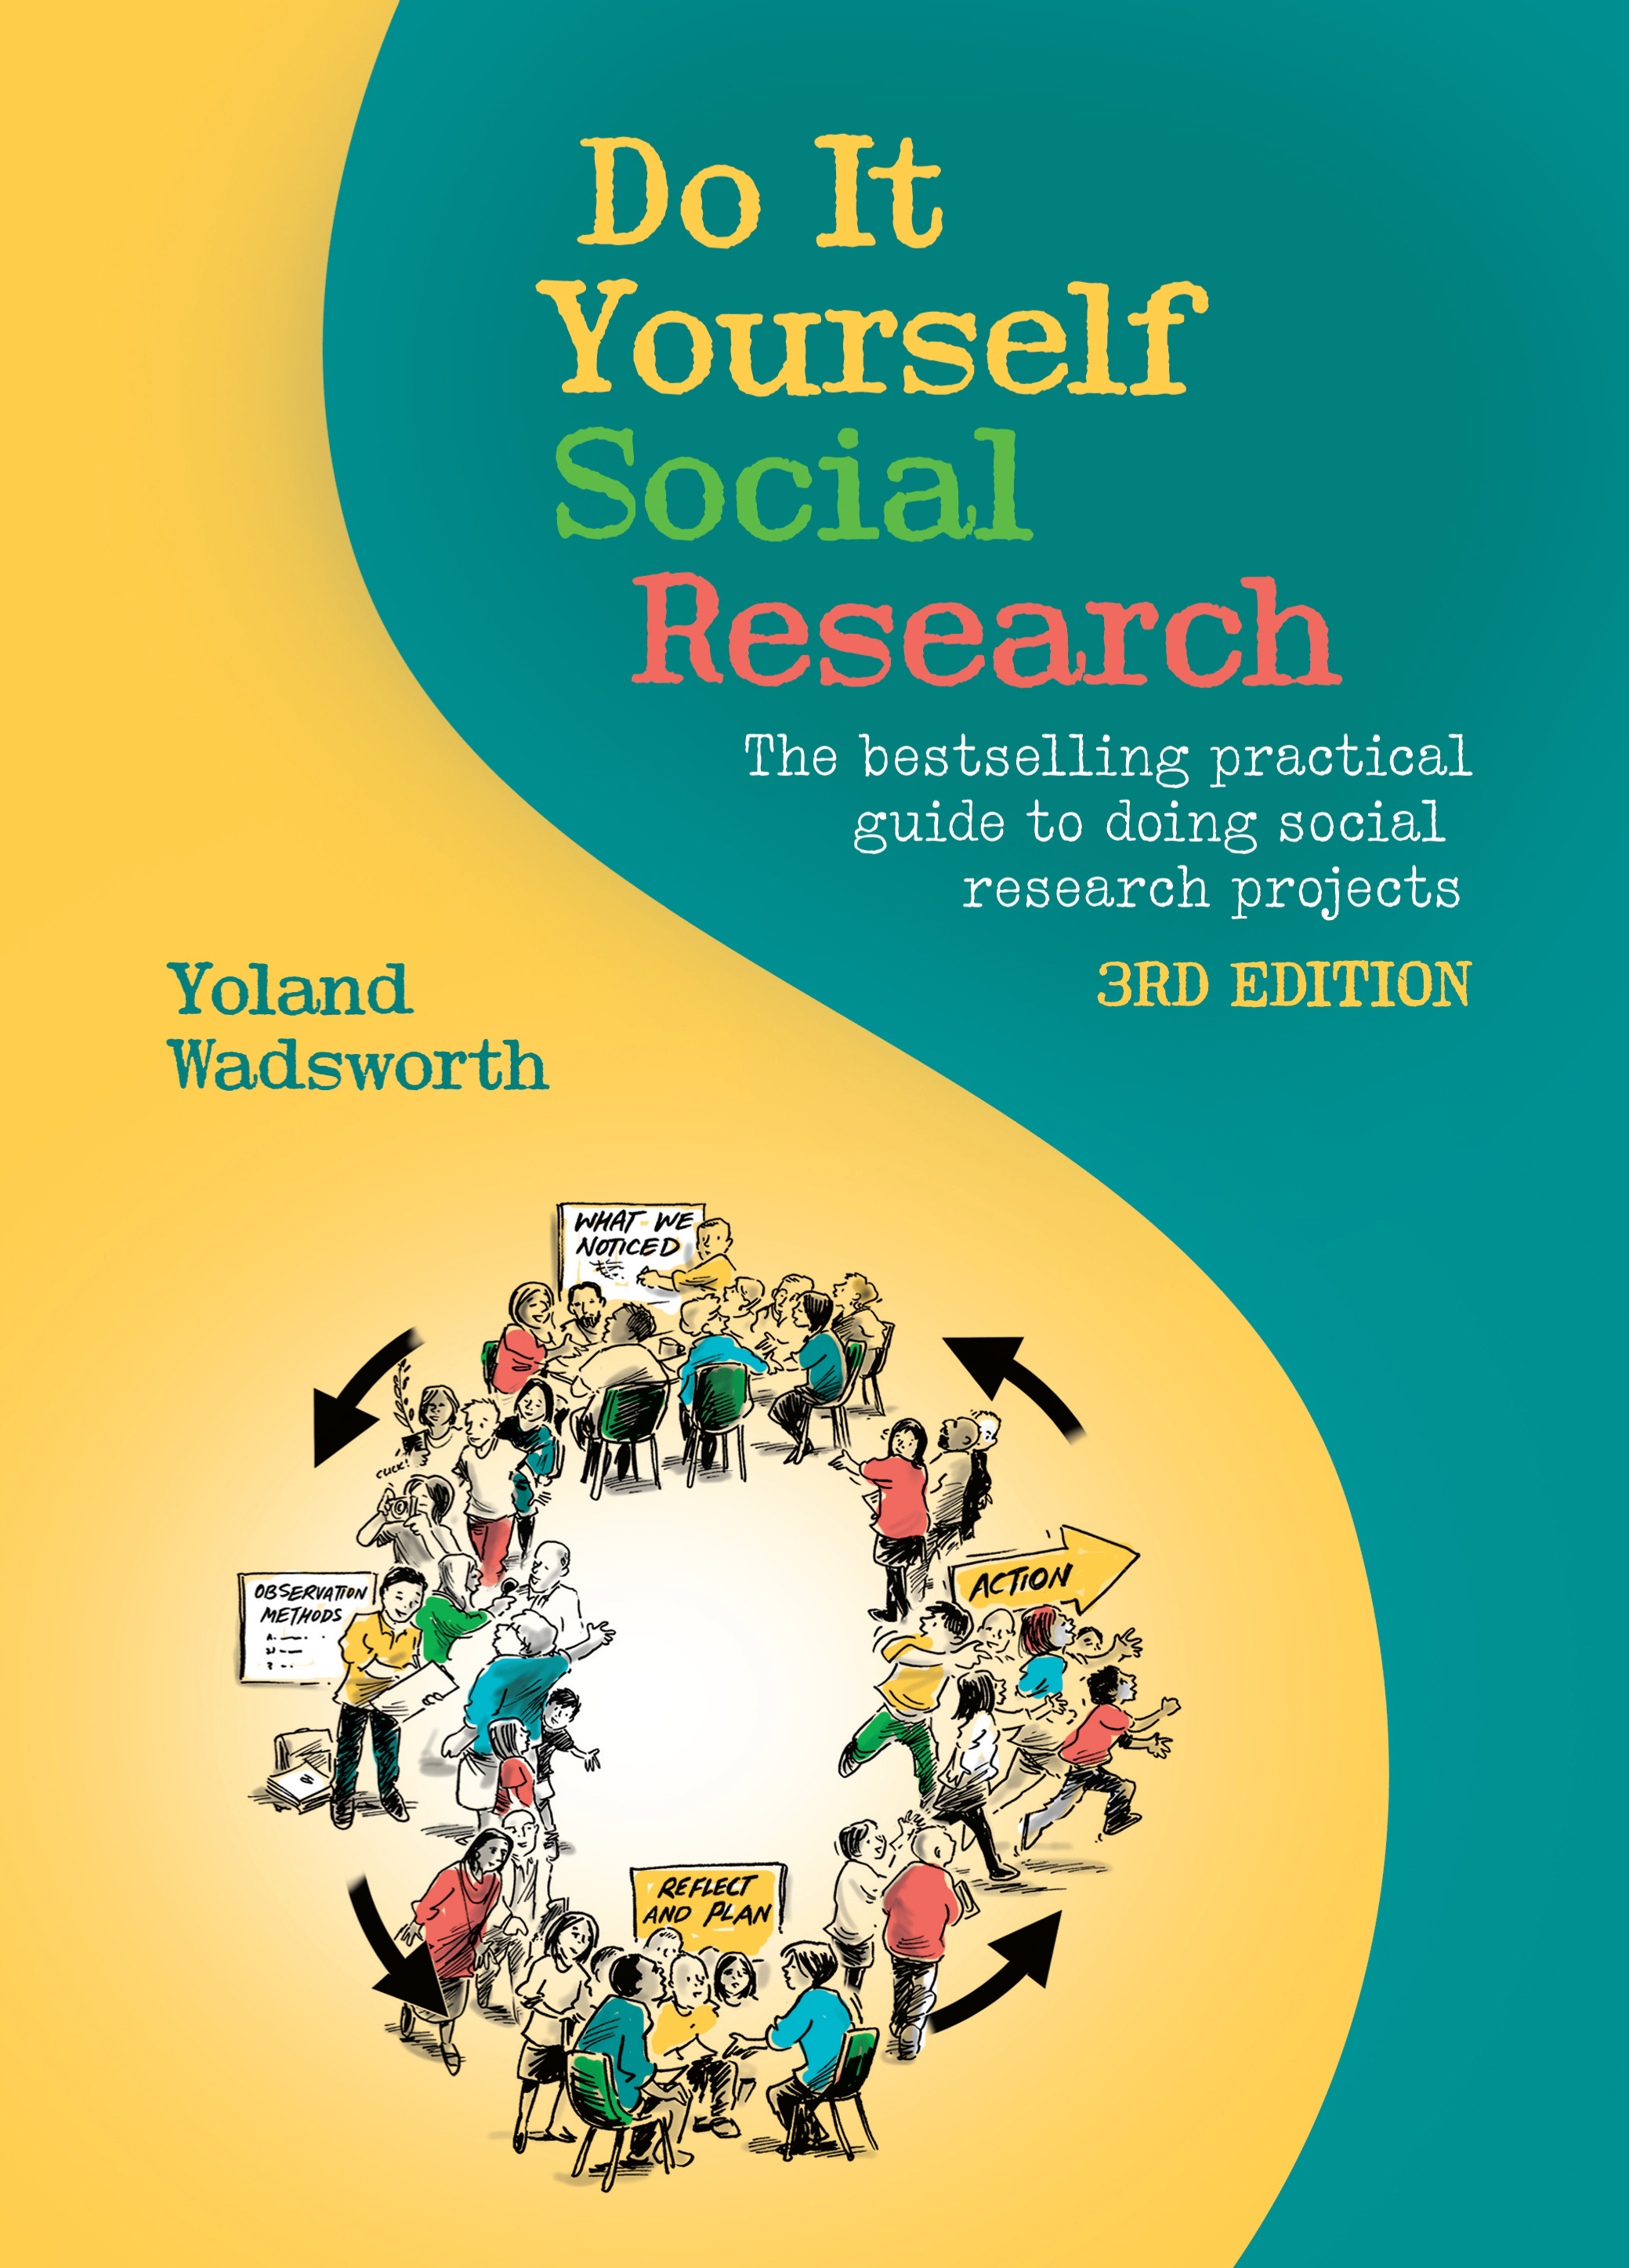 Do It Yourself: Do It Yourself Social Research